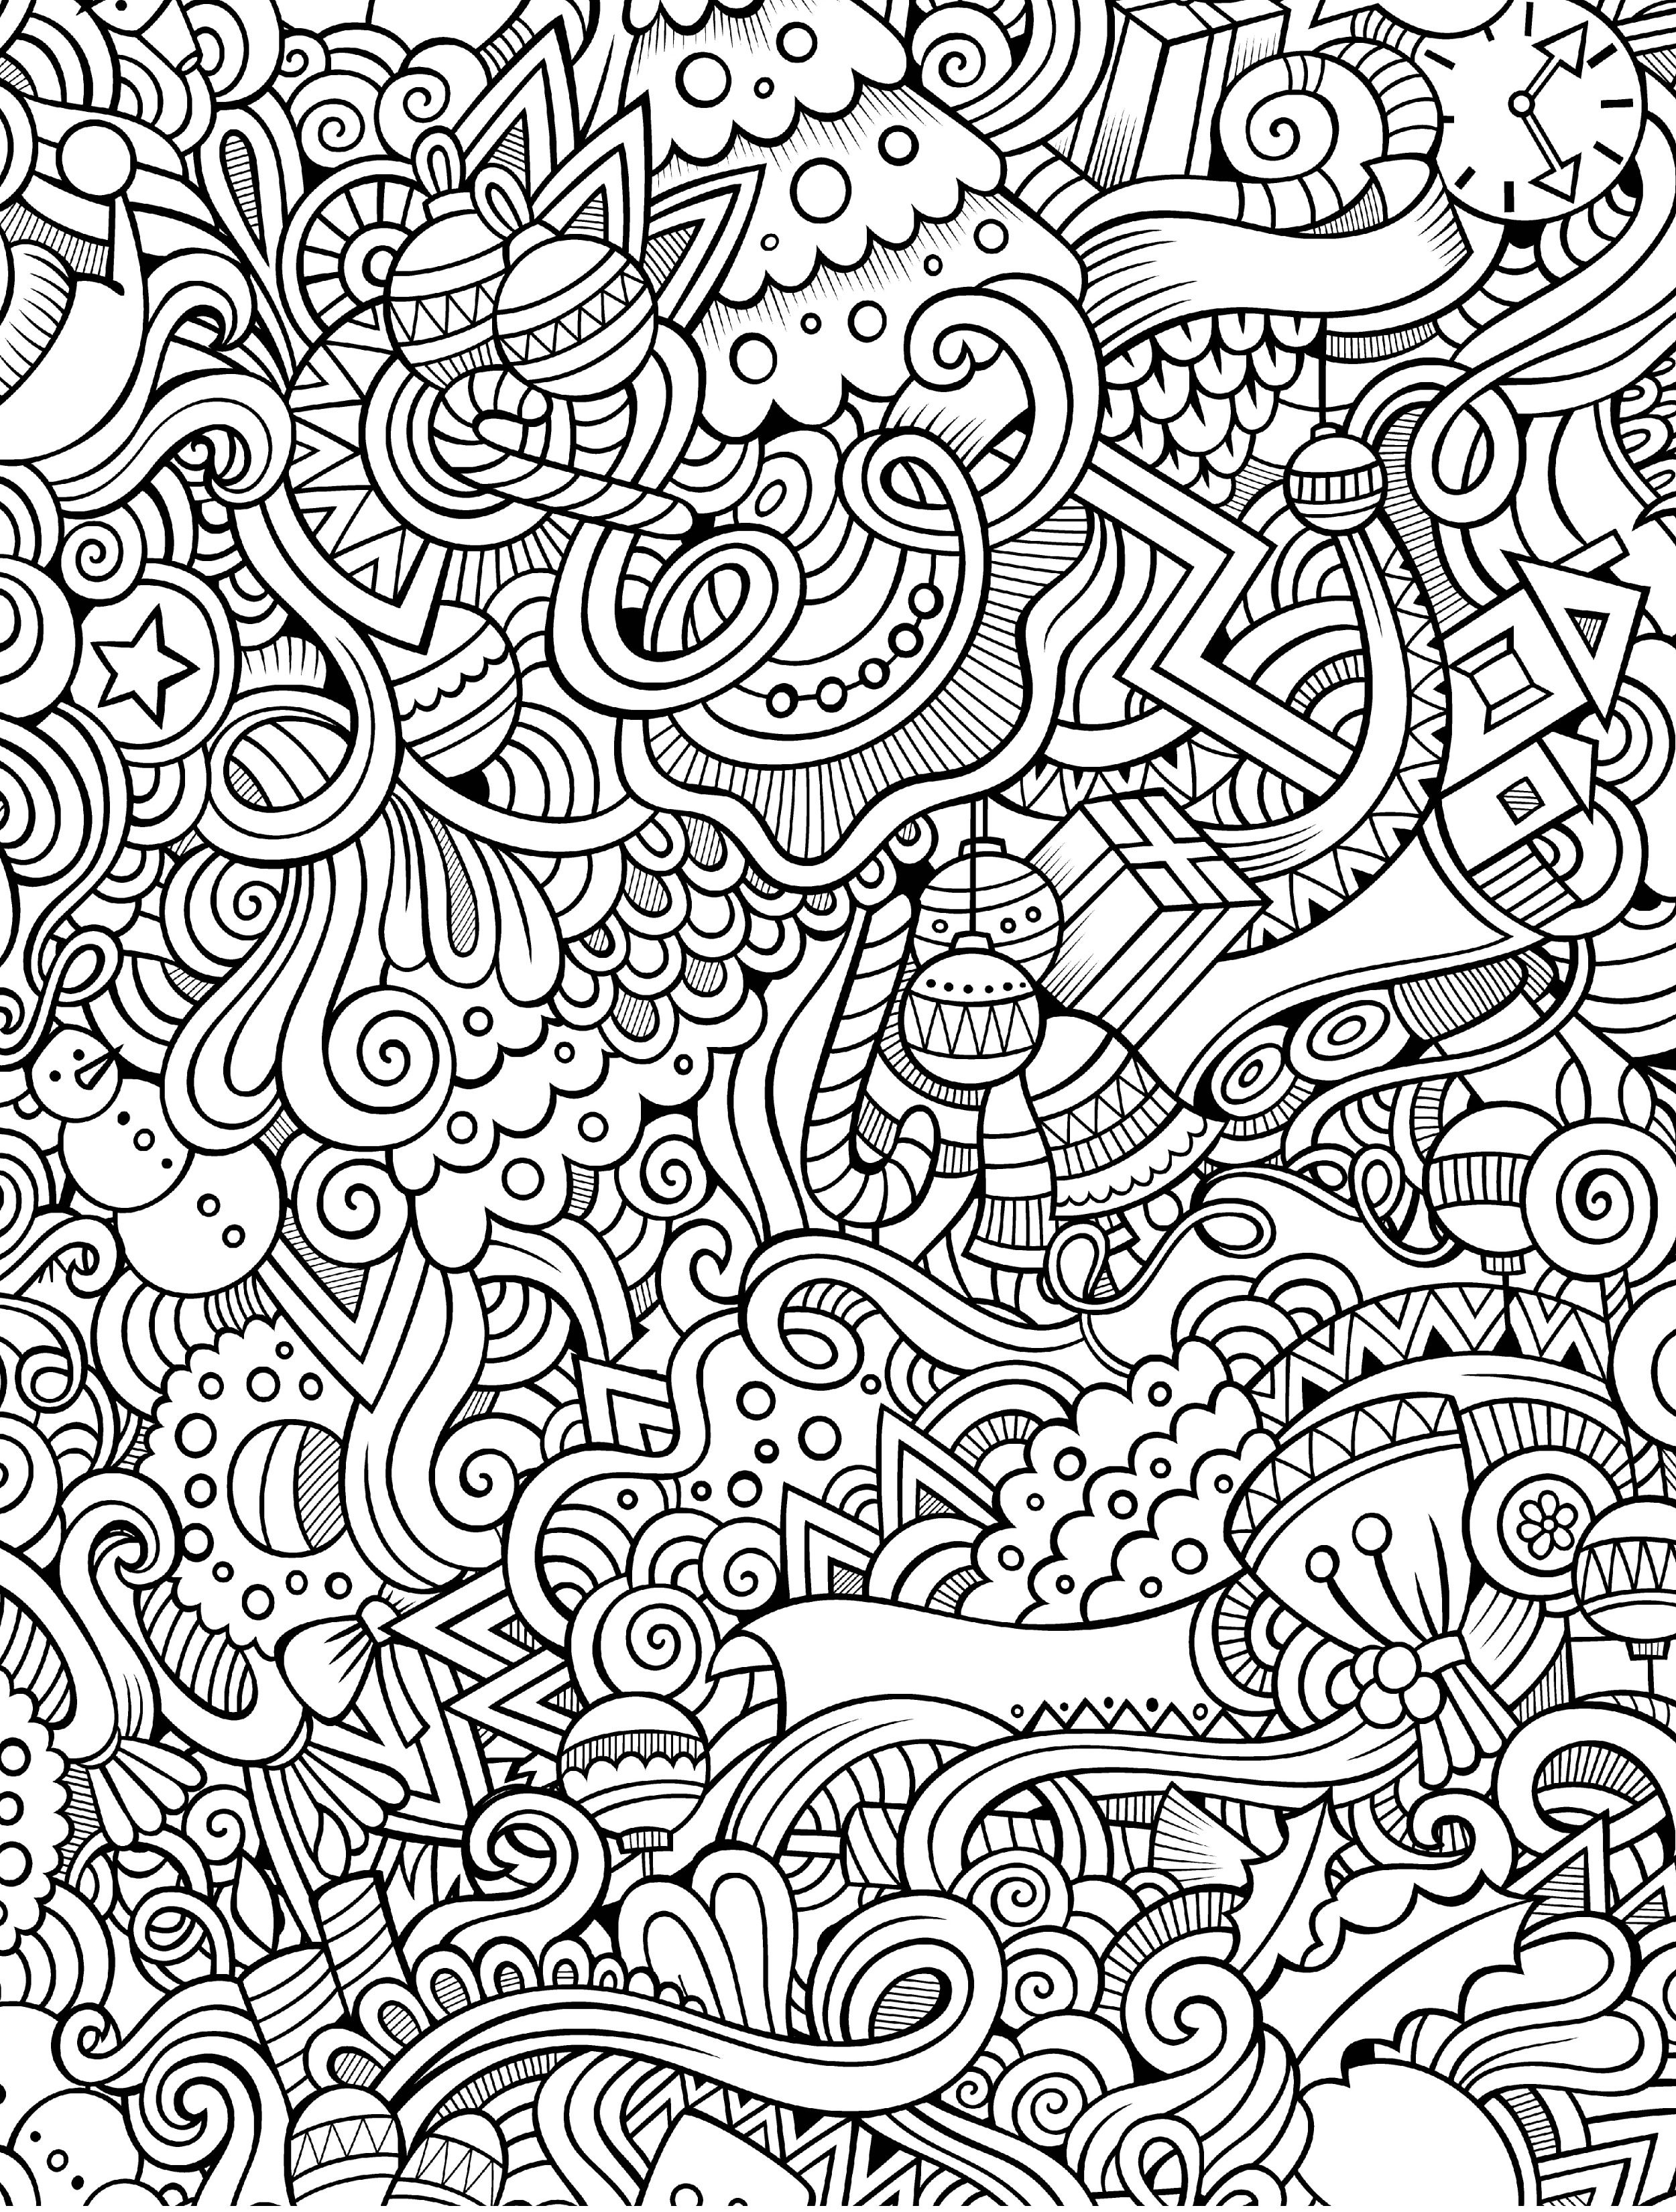 Pin En Christmas Easter Colouring Pages Zentangles